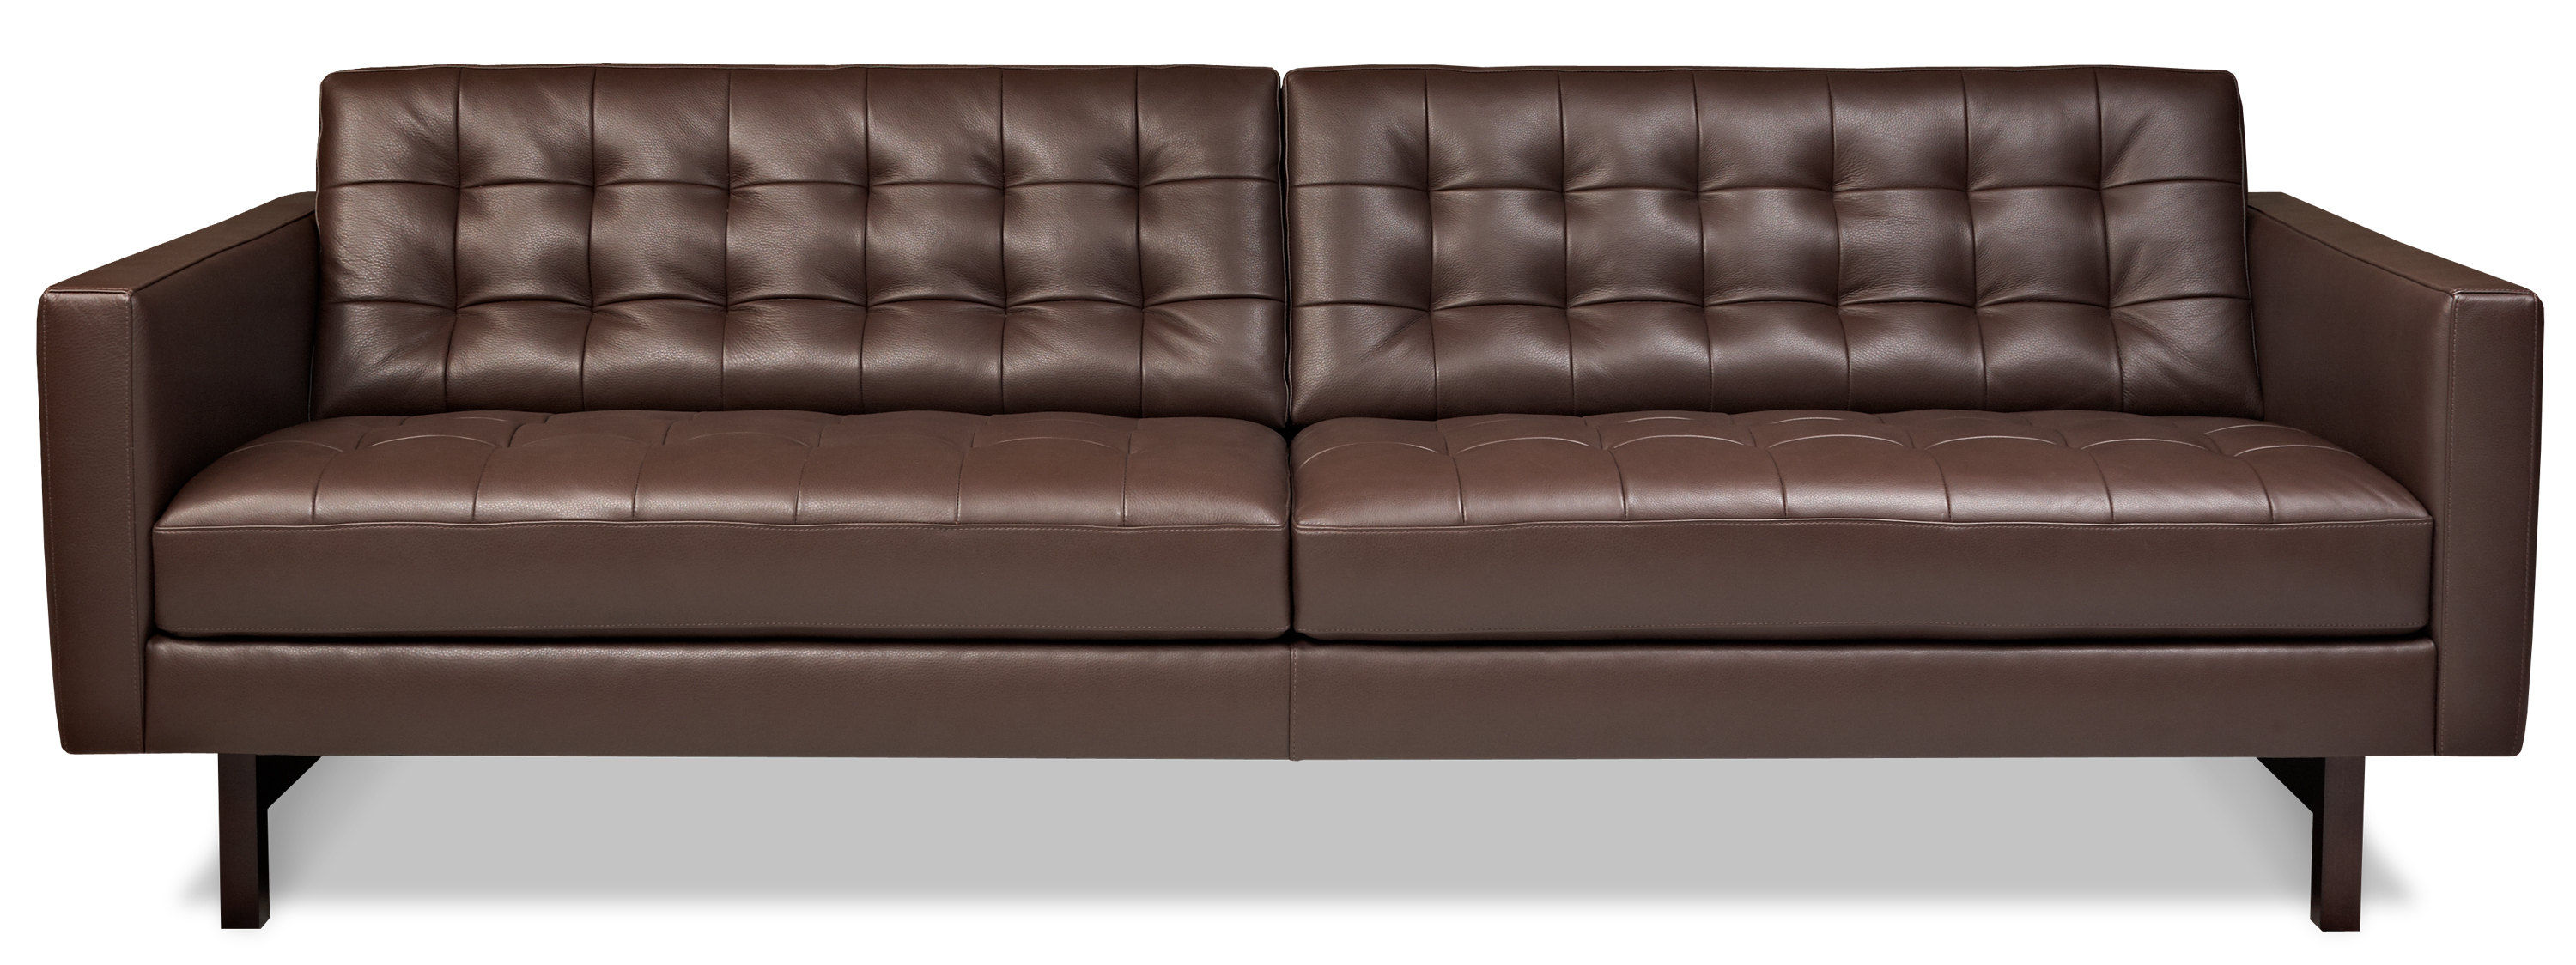 Parker Sofa American Leather | King Sofa intended for Parker Sofa Chairs